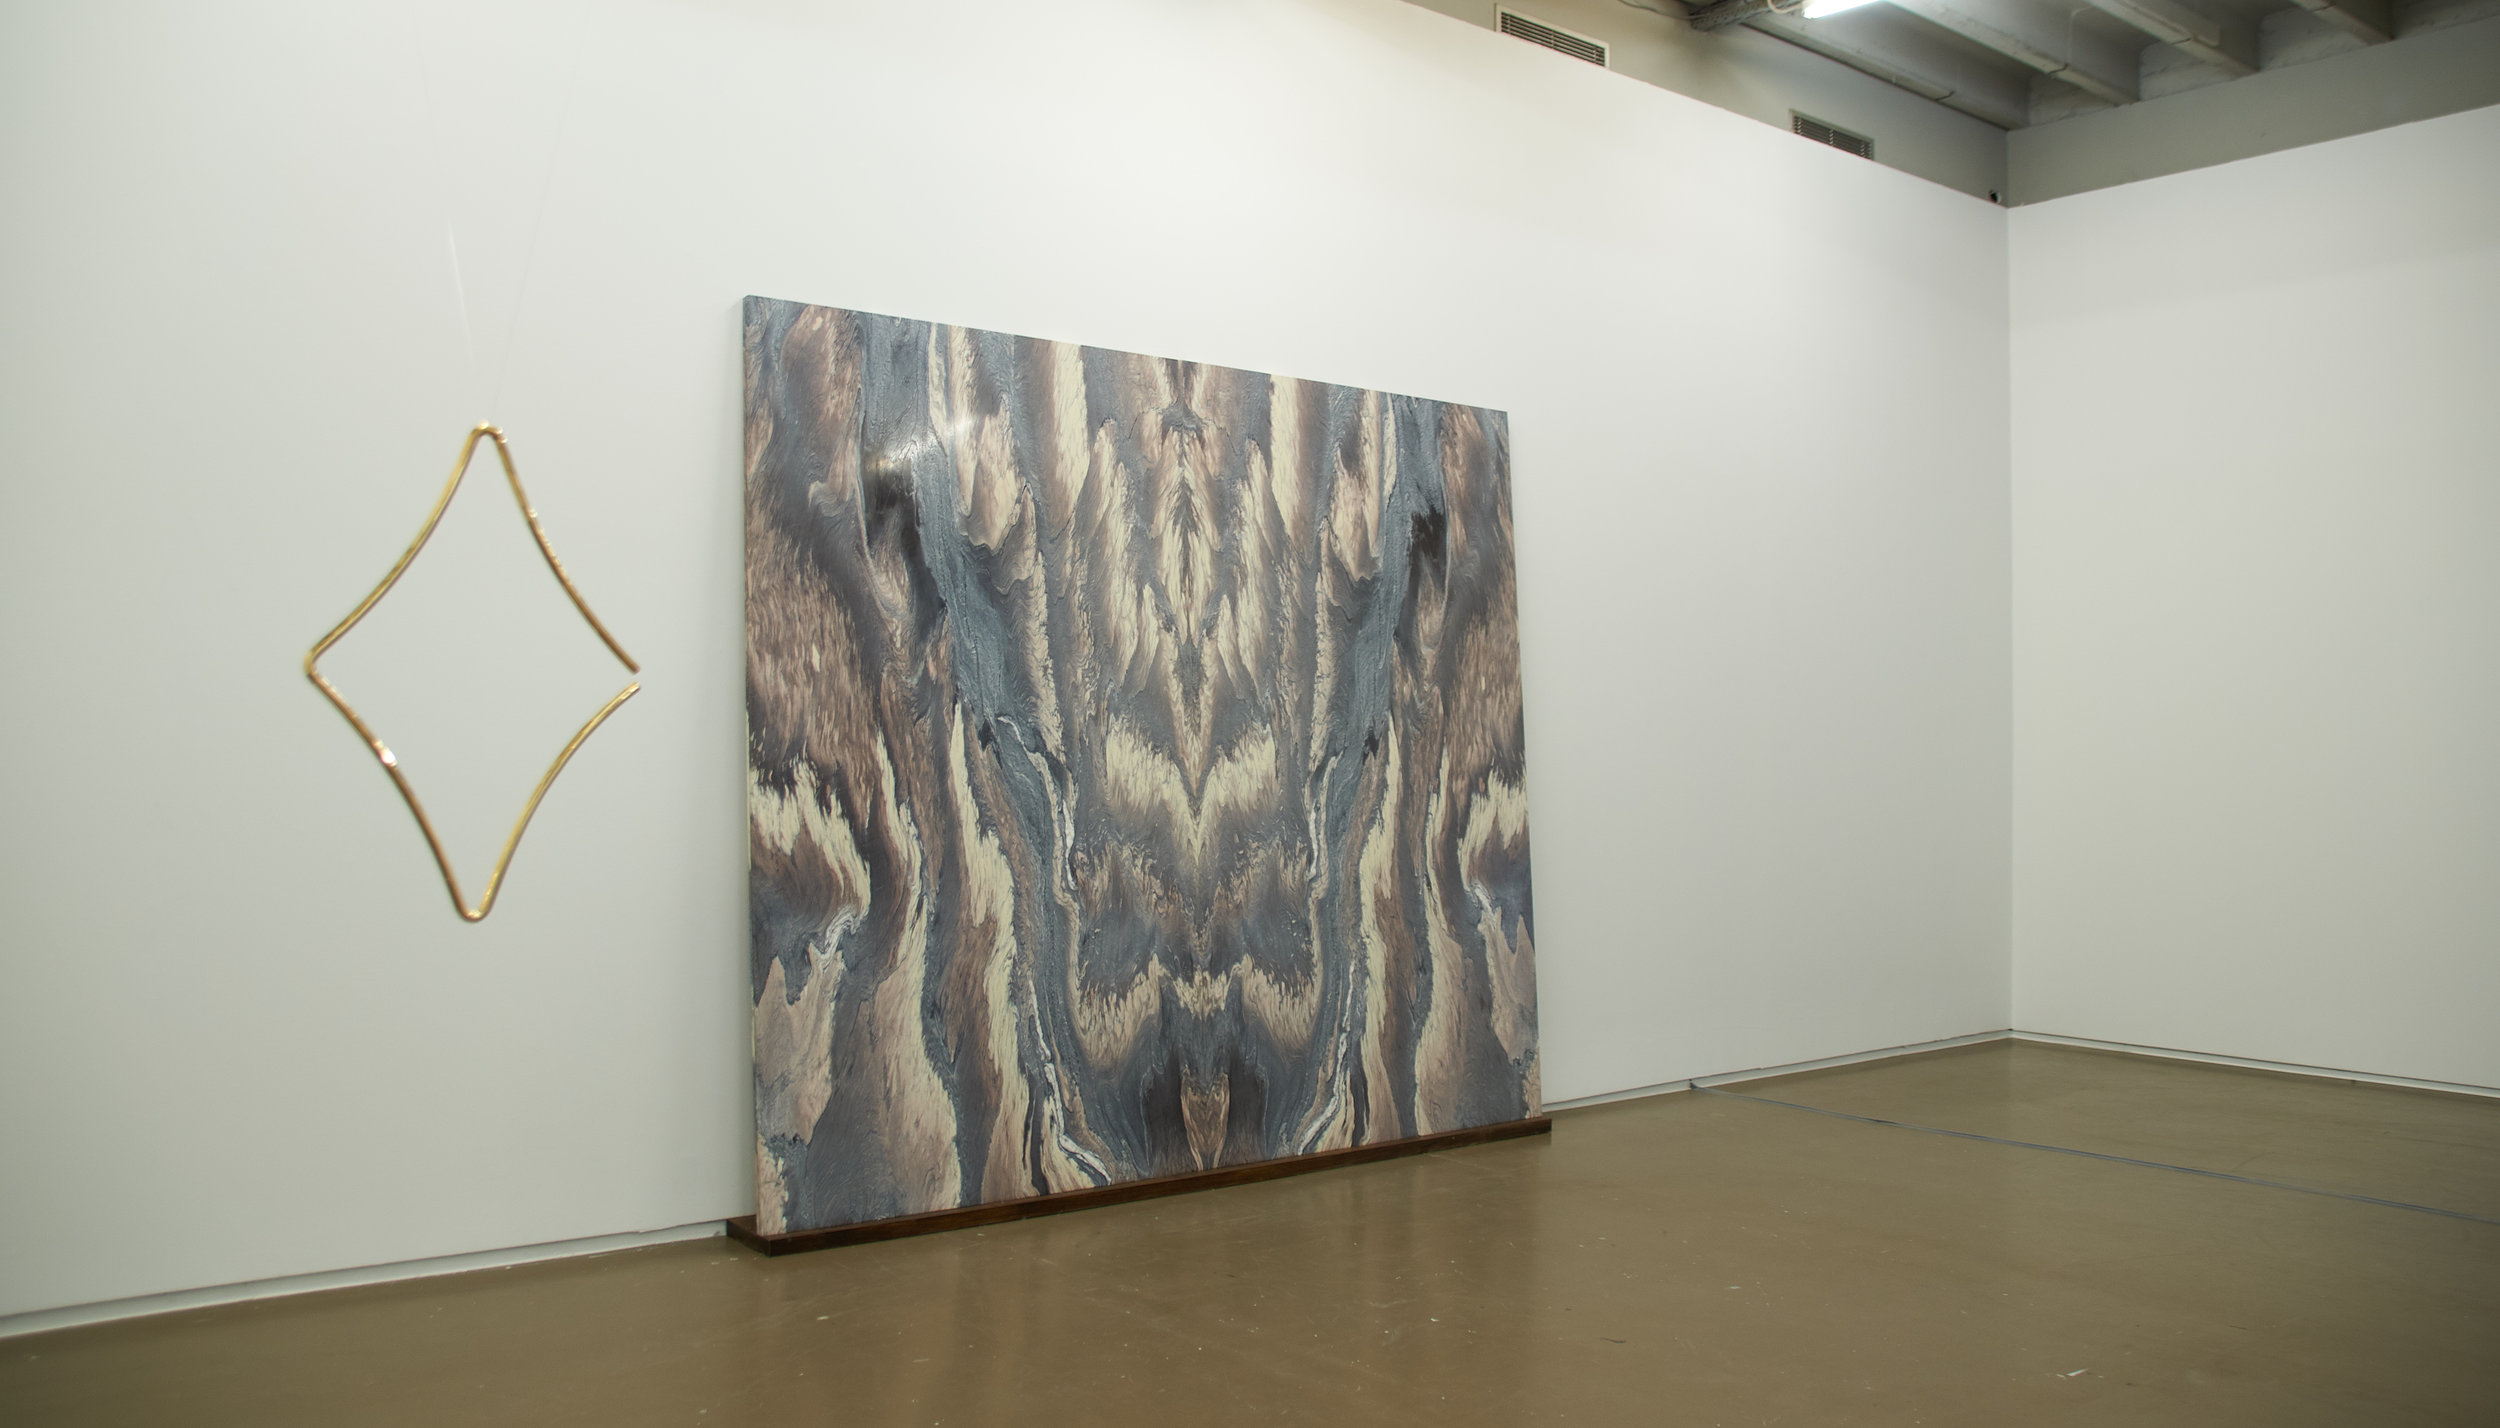 The Appoach Gallery at The Independent Brussels